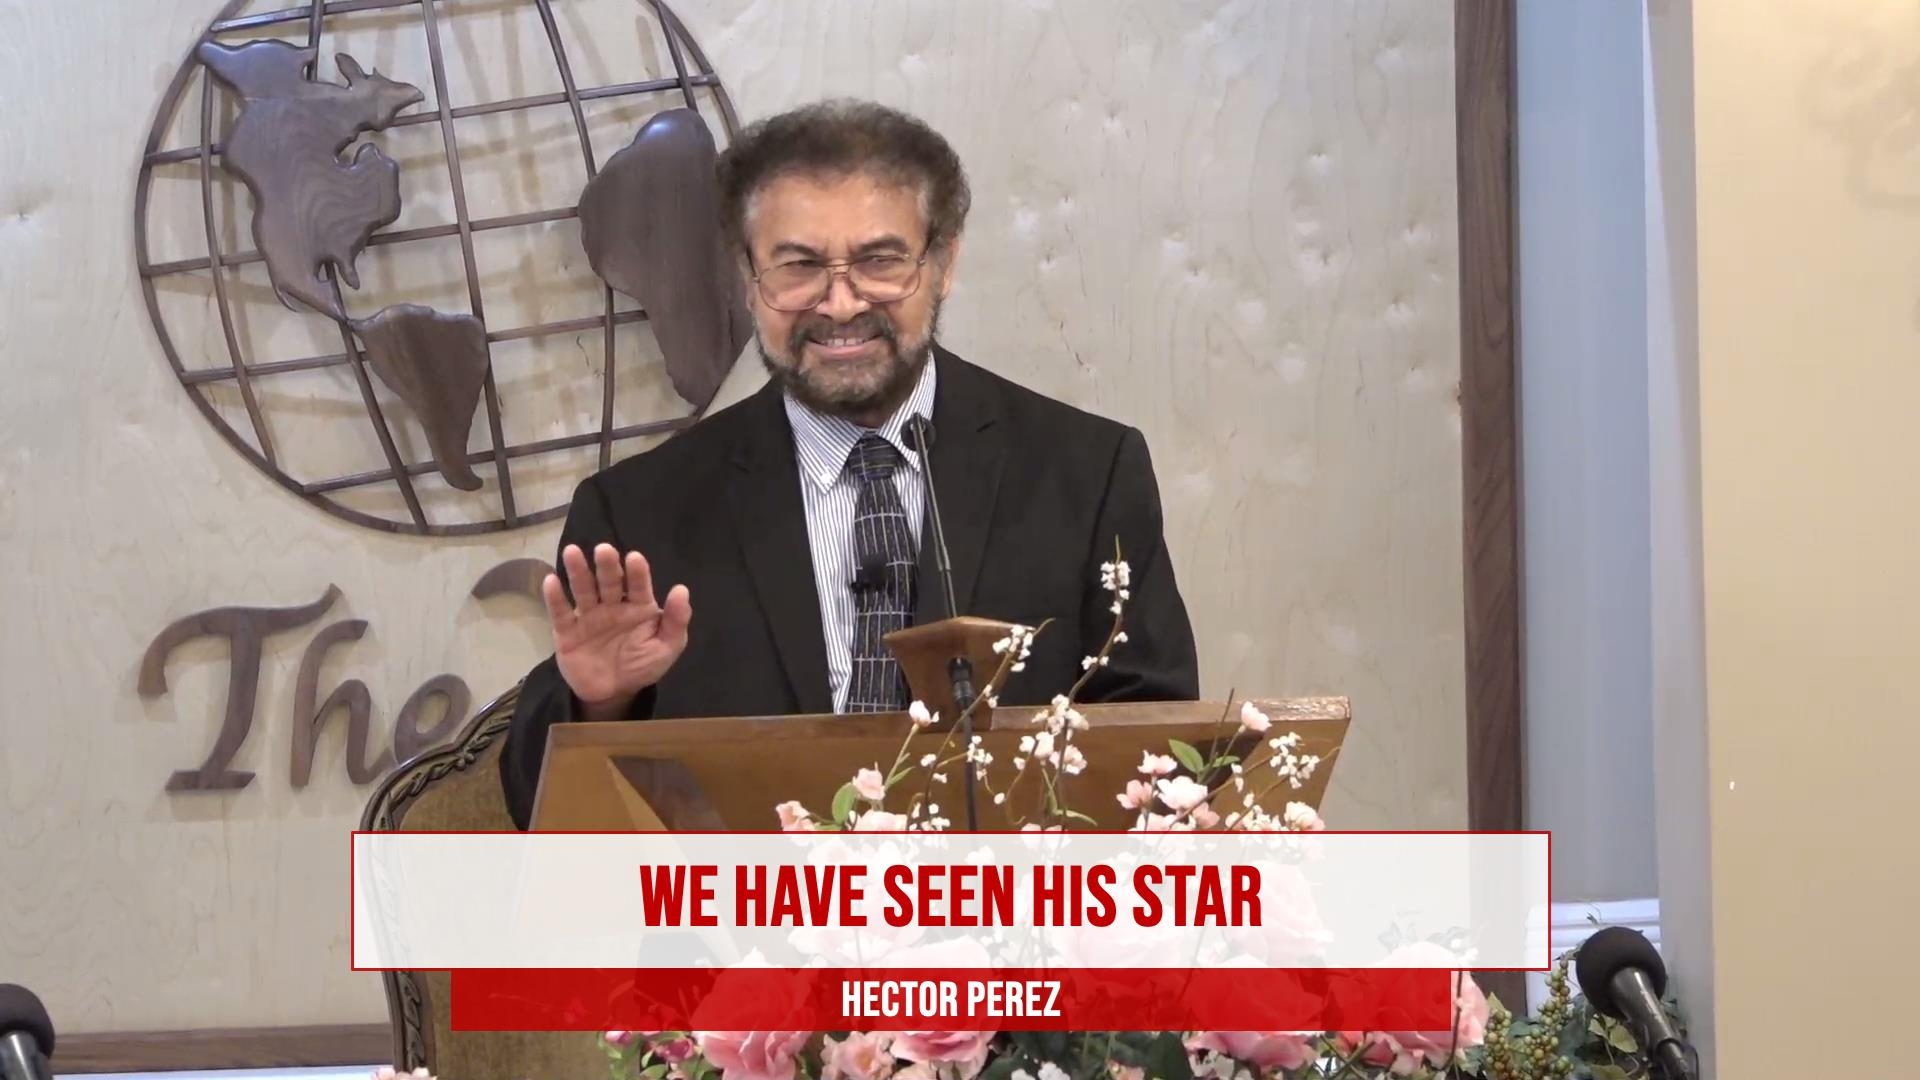 We Have Seen His Star  Dec 26 2020